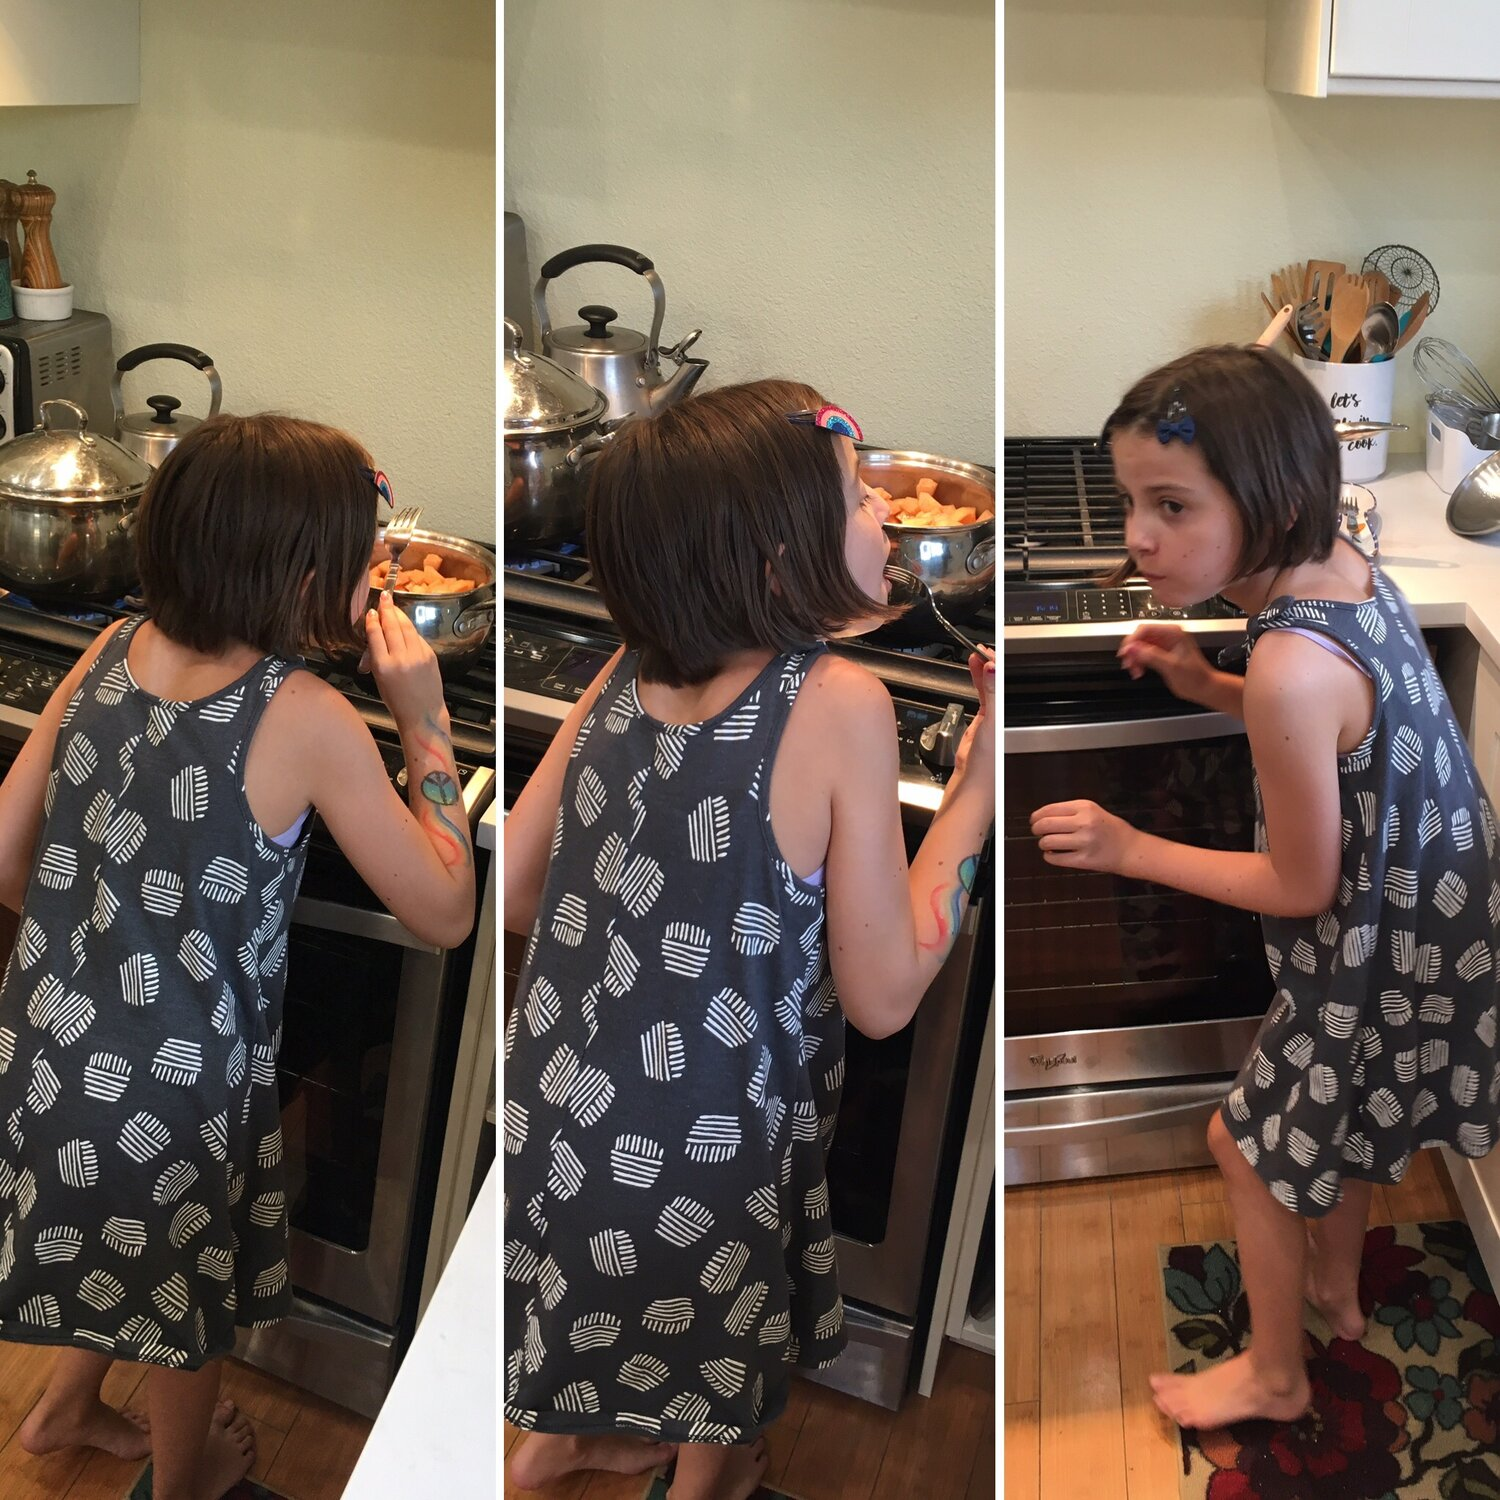 This kid! As if I couldn't see her, she snuck past me to get a taste of our cooking pears when I was right next to the stove at the kitchen sink. She cracks me up!